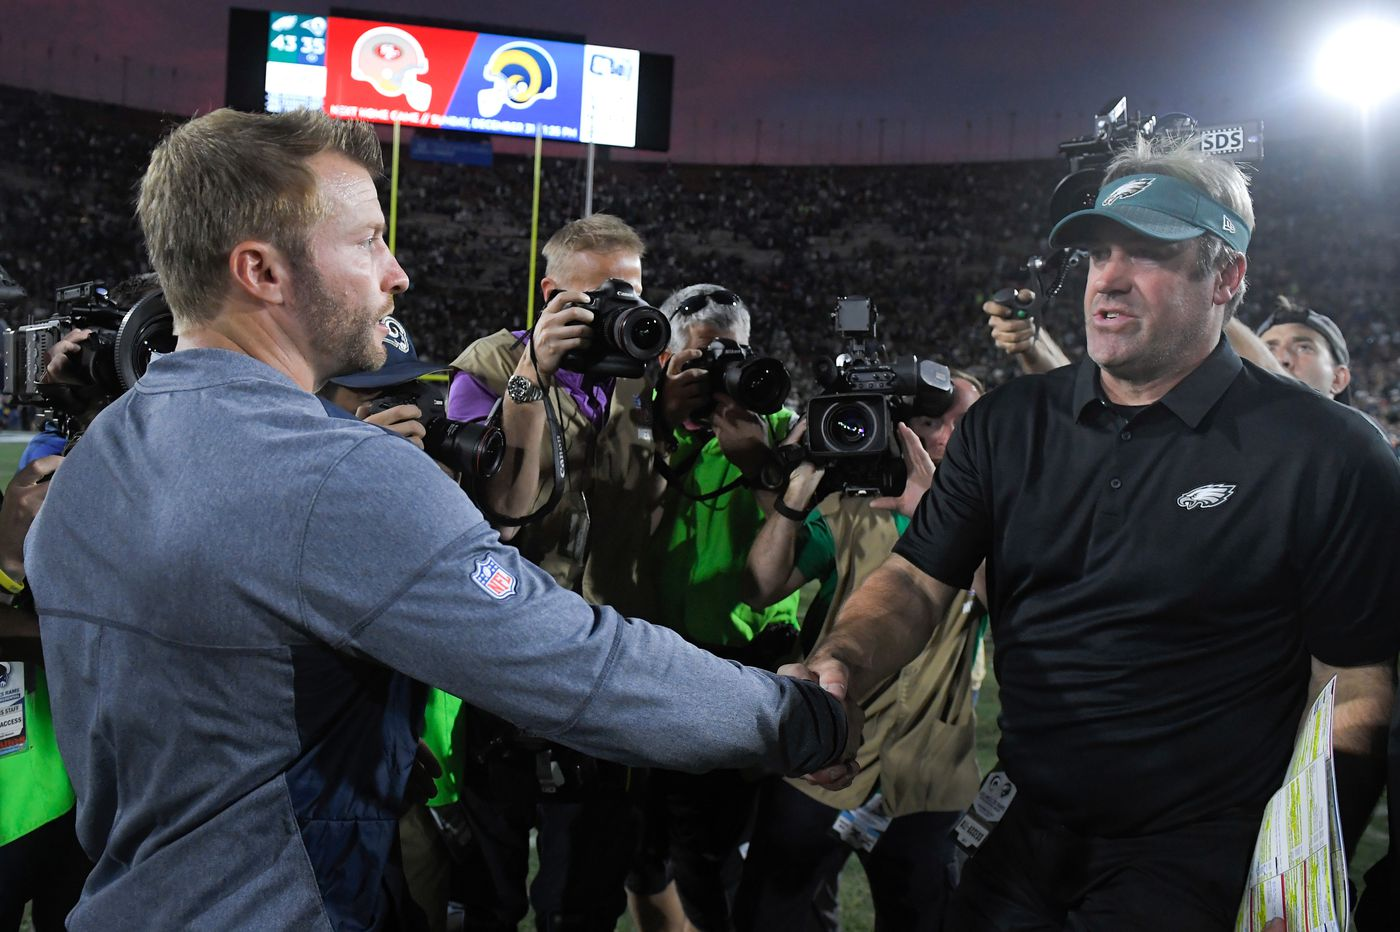 Doug Pederson, Carson Wentz and the Eagles look better long-term than Sean  McVay, Jared Goff